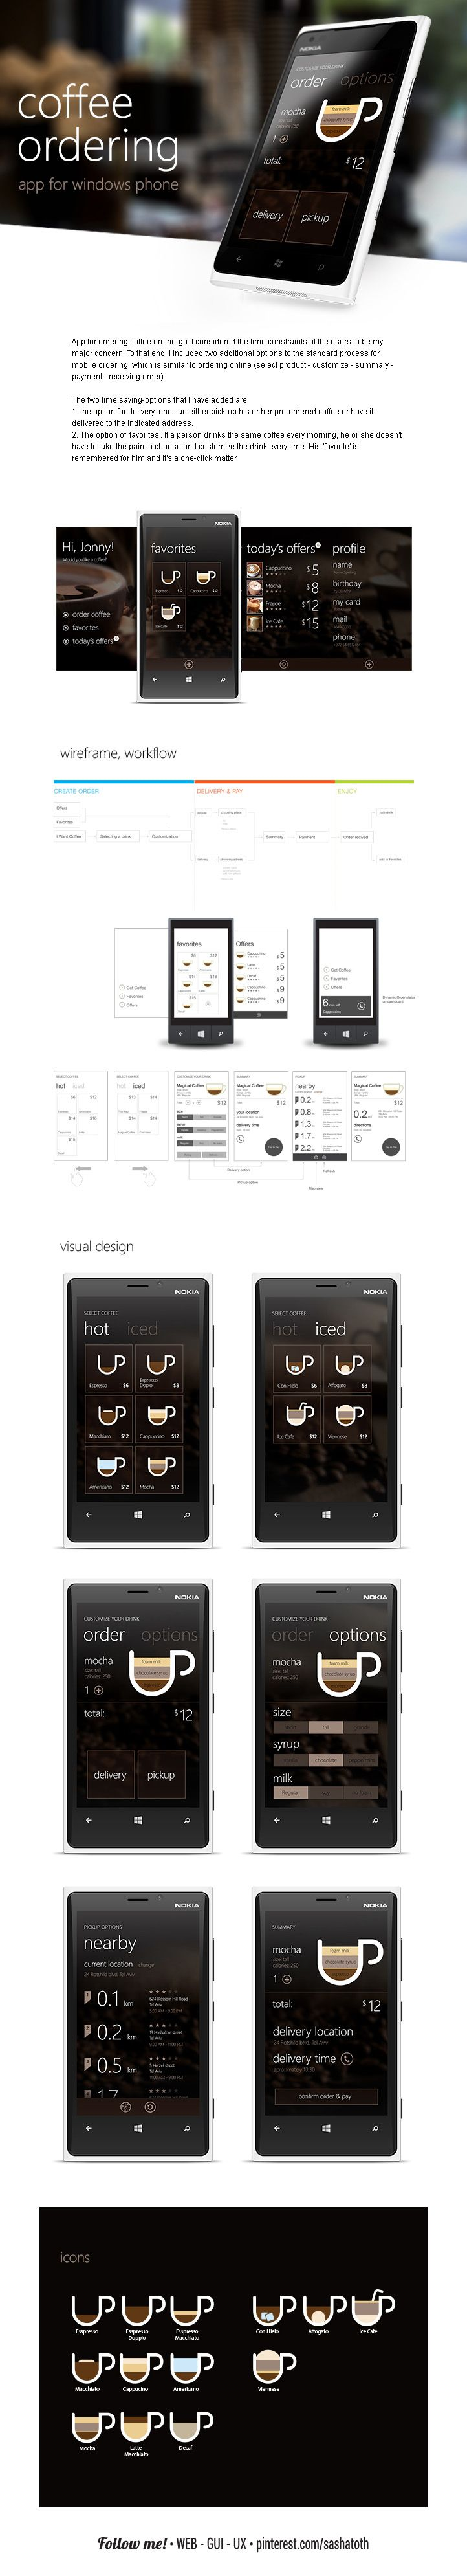 Aplicación de Windows Phone para ordenar café #Diseño #Apps